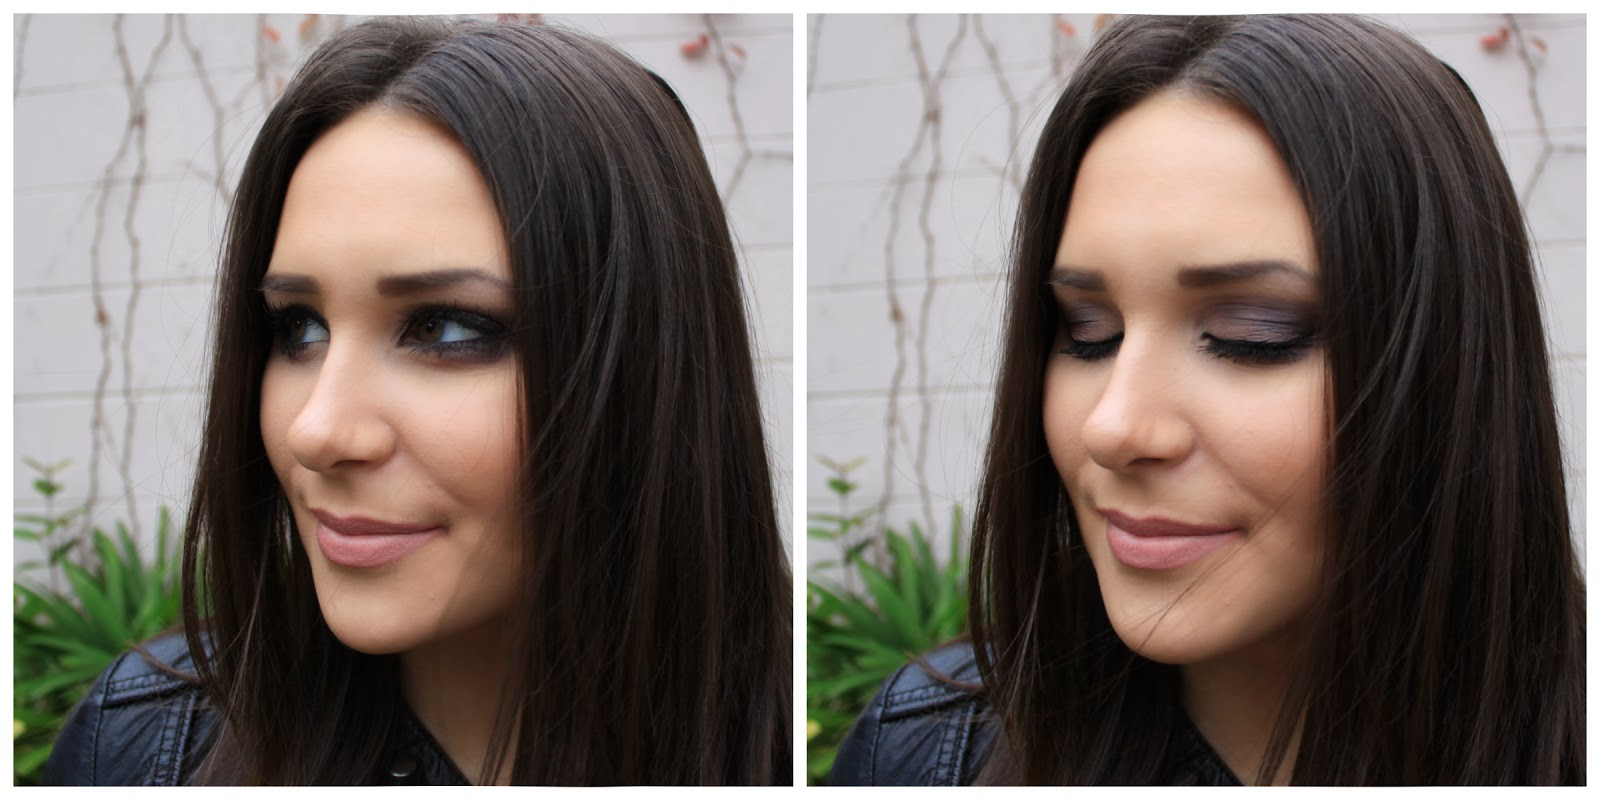 Beauty blogger Mash Elle shares an easy night time smokey eye using Urban Decay's Naked 3 palette